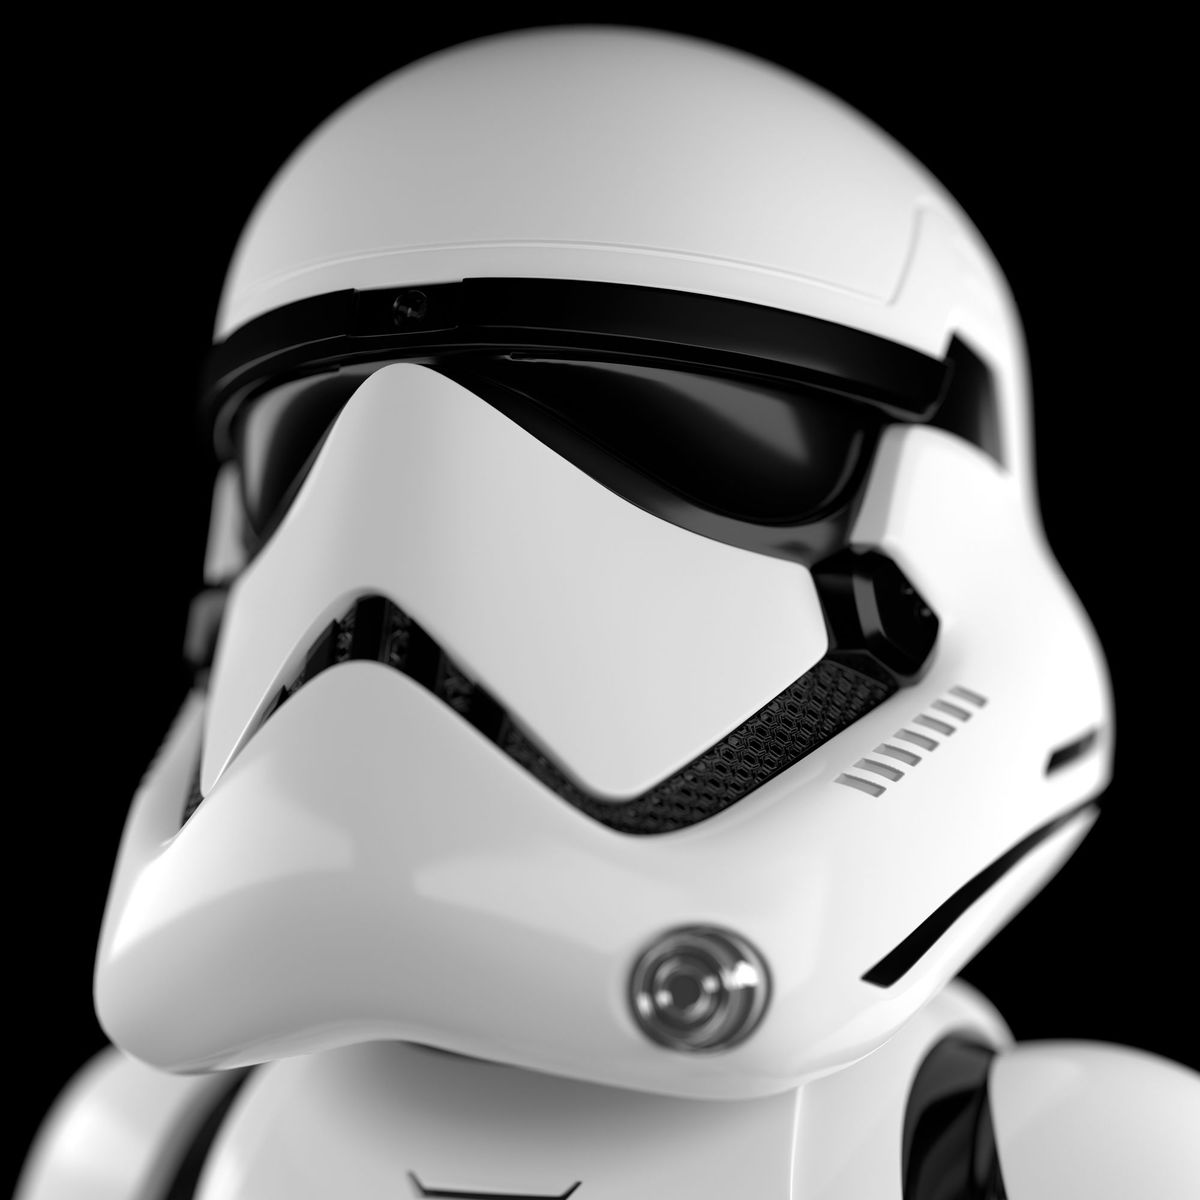 Stormtrooper, Star Wars toy robot